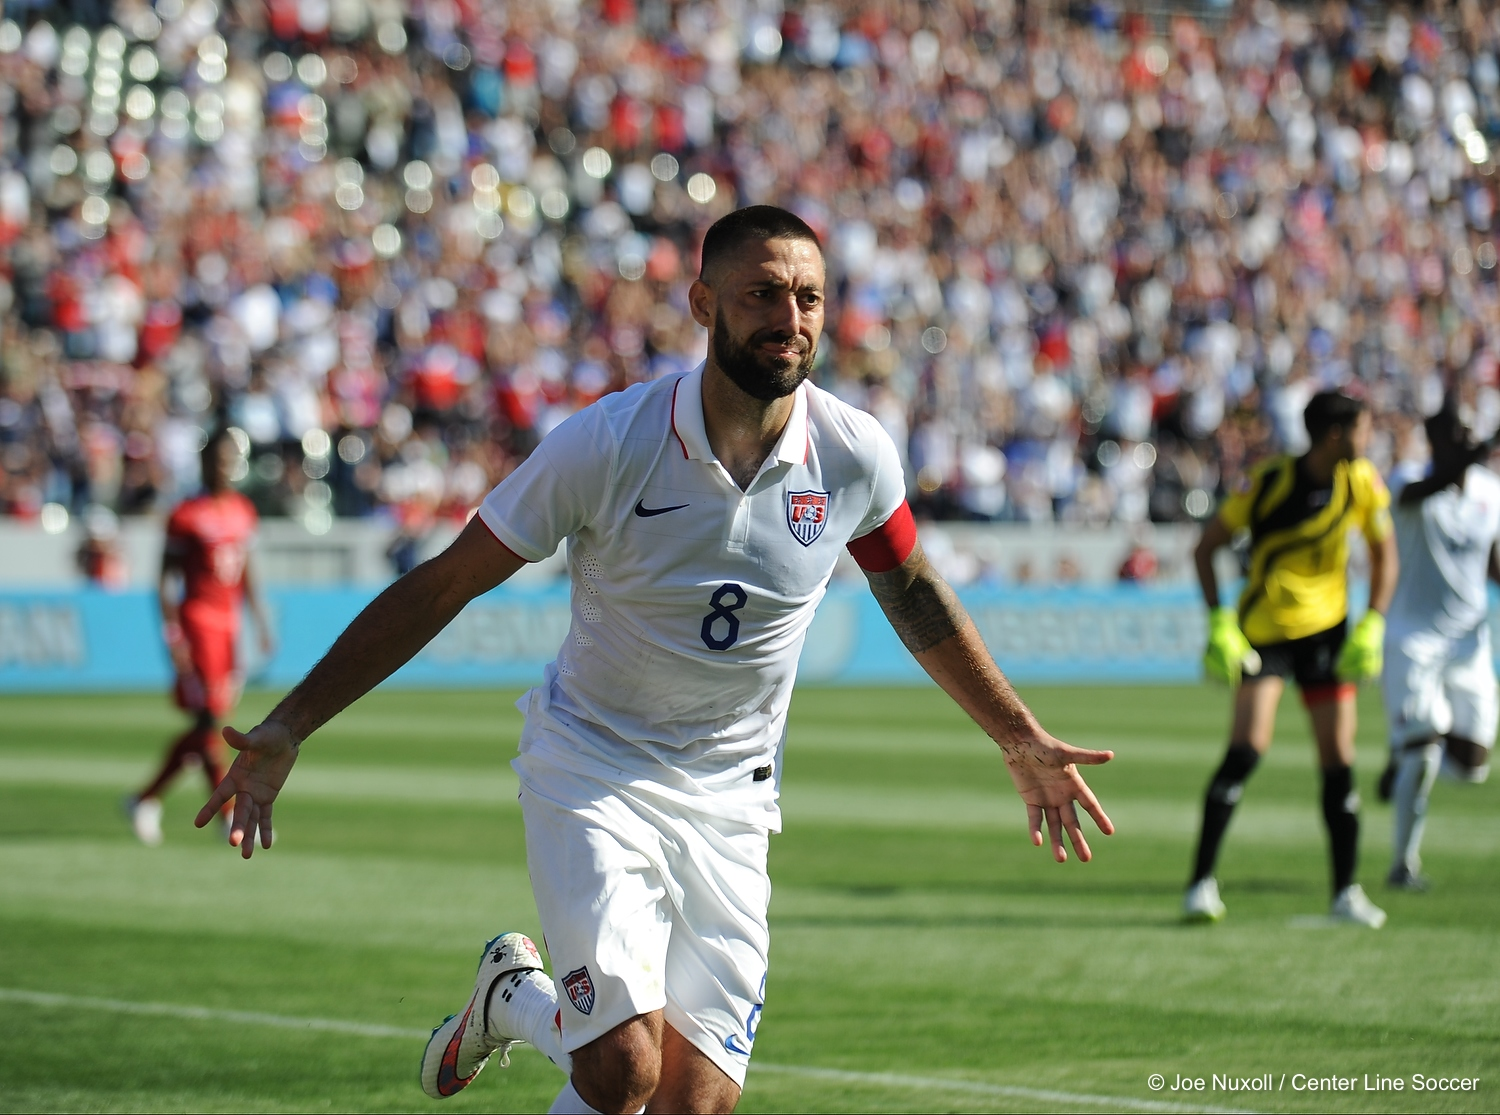 Clint Dempsey scores the second goal in the USMNT 2-0 win over visiting Panama.